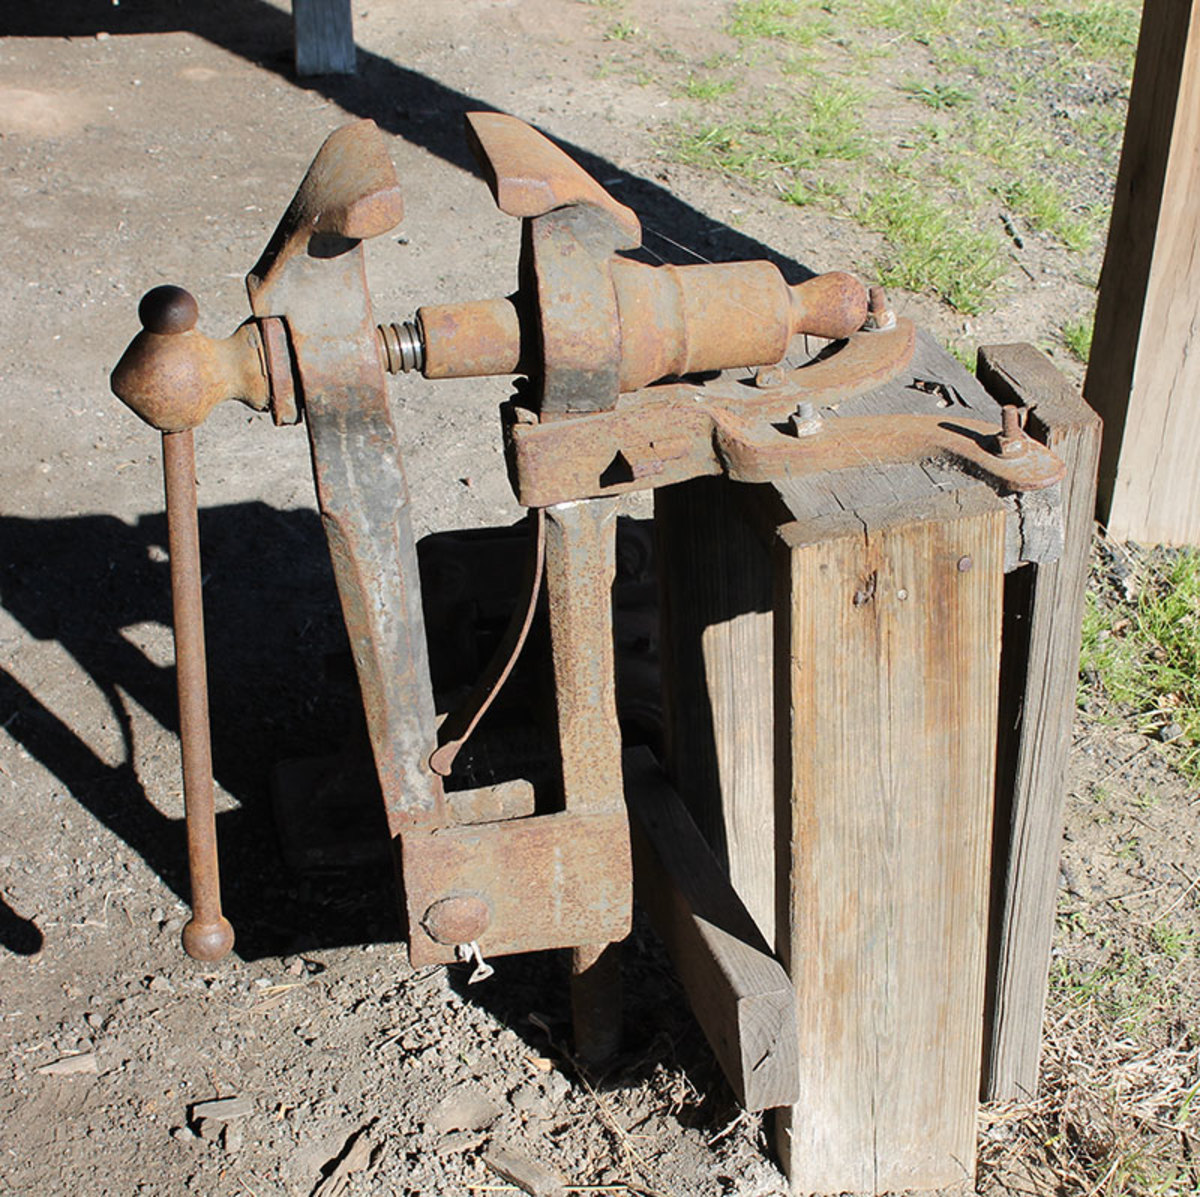 Black Smith Vise made to transfer vibrations to the ground